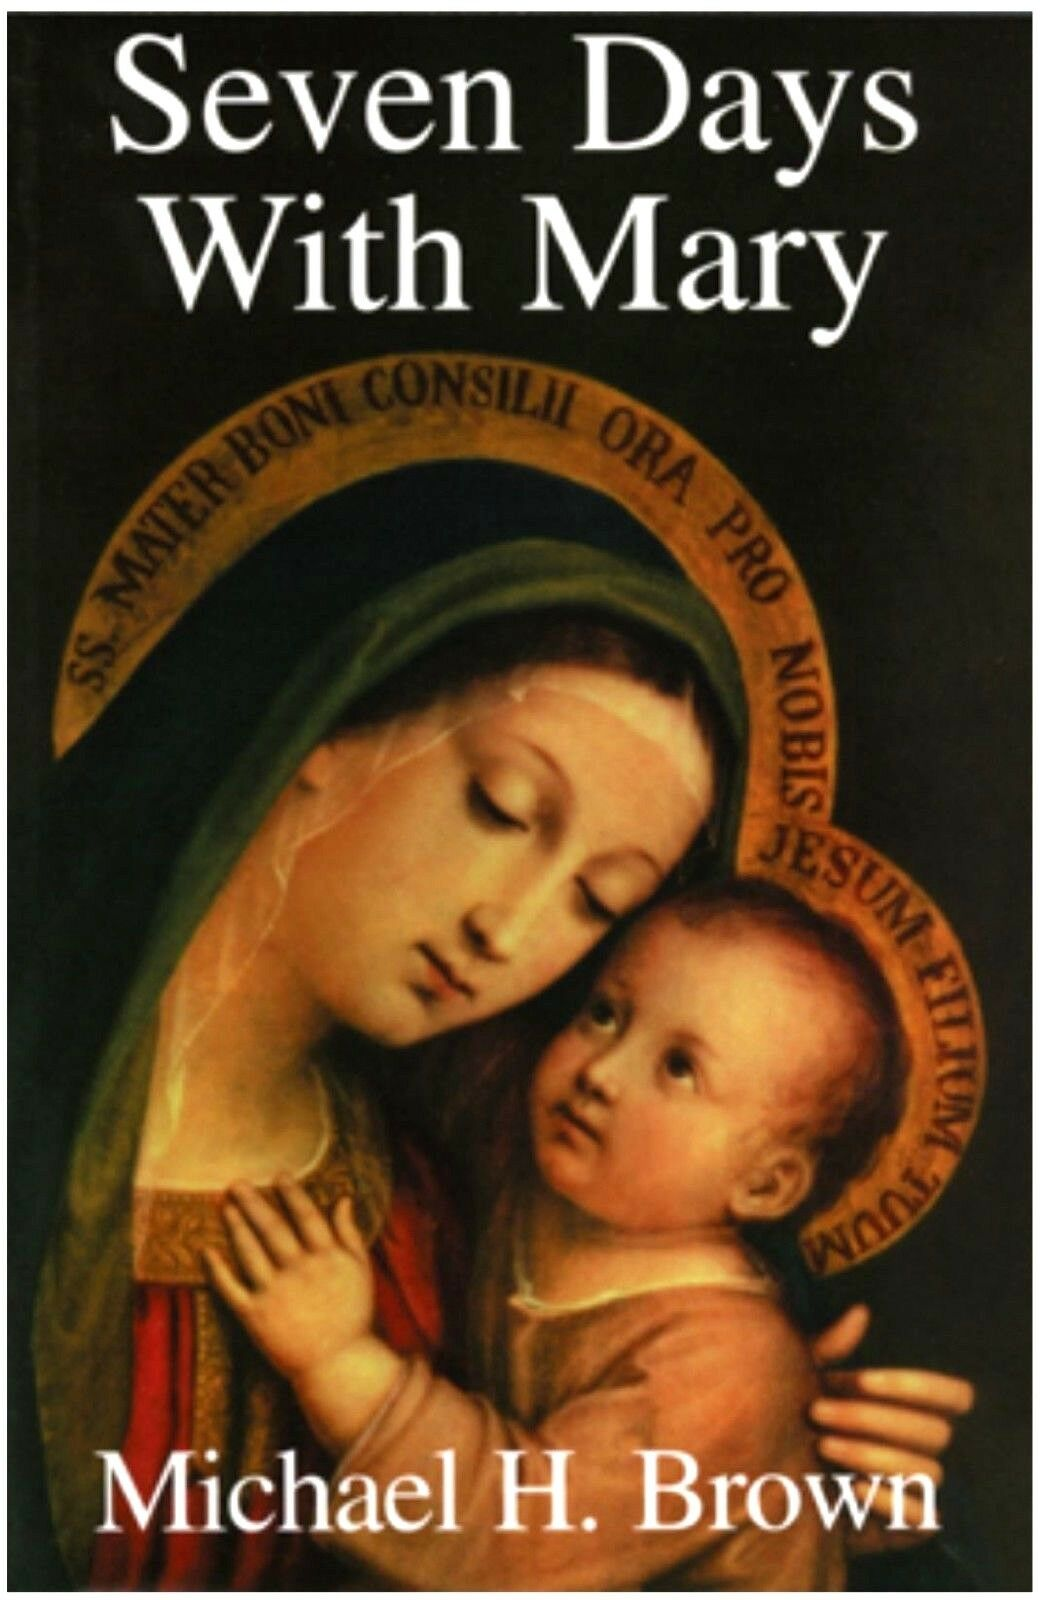 Seven Days With Mary - Book by Michael H. Brown (Paperback)